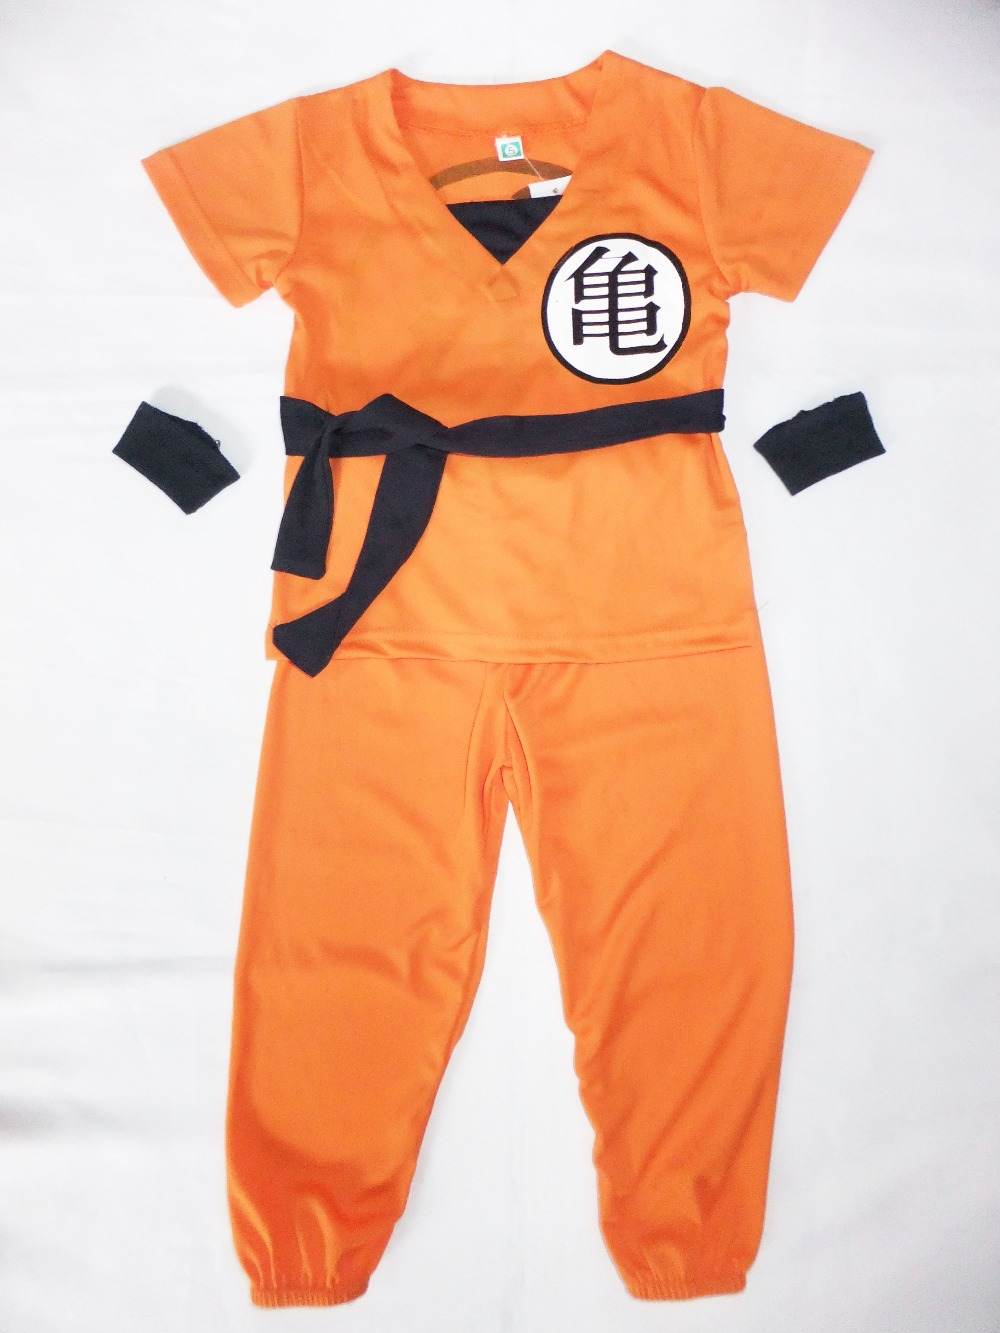 wholesale Cartoon Dragonball 3-7years Boy Saiyan Role-playing cosplay,Halloween costumes kid Star SON GOKU model clothing